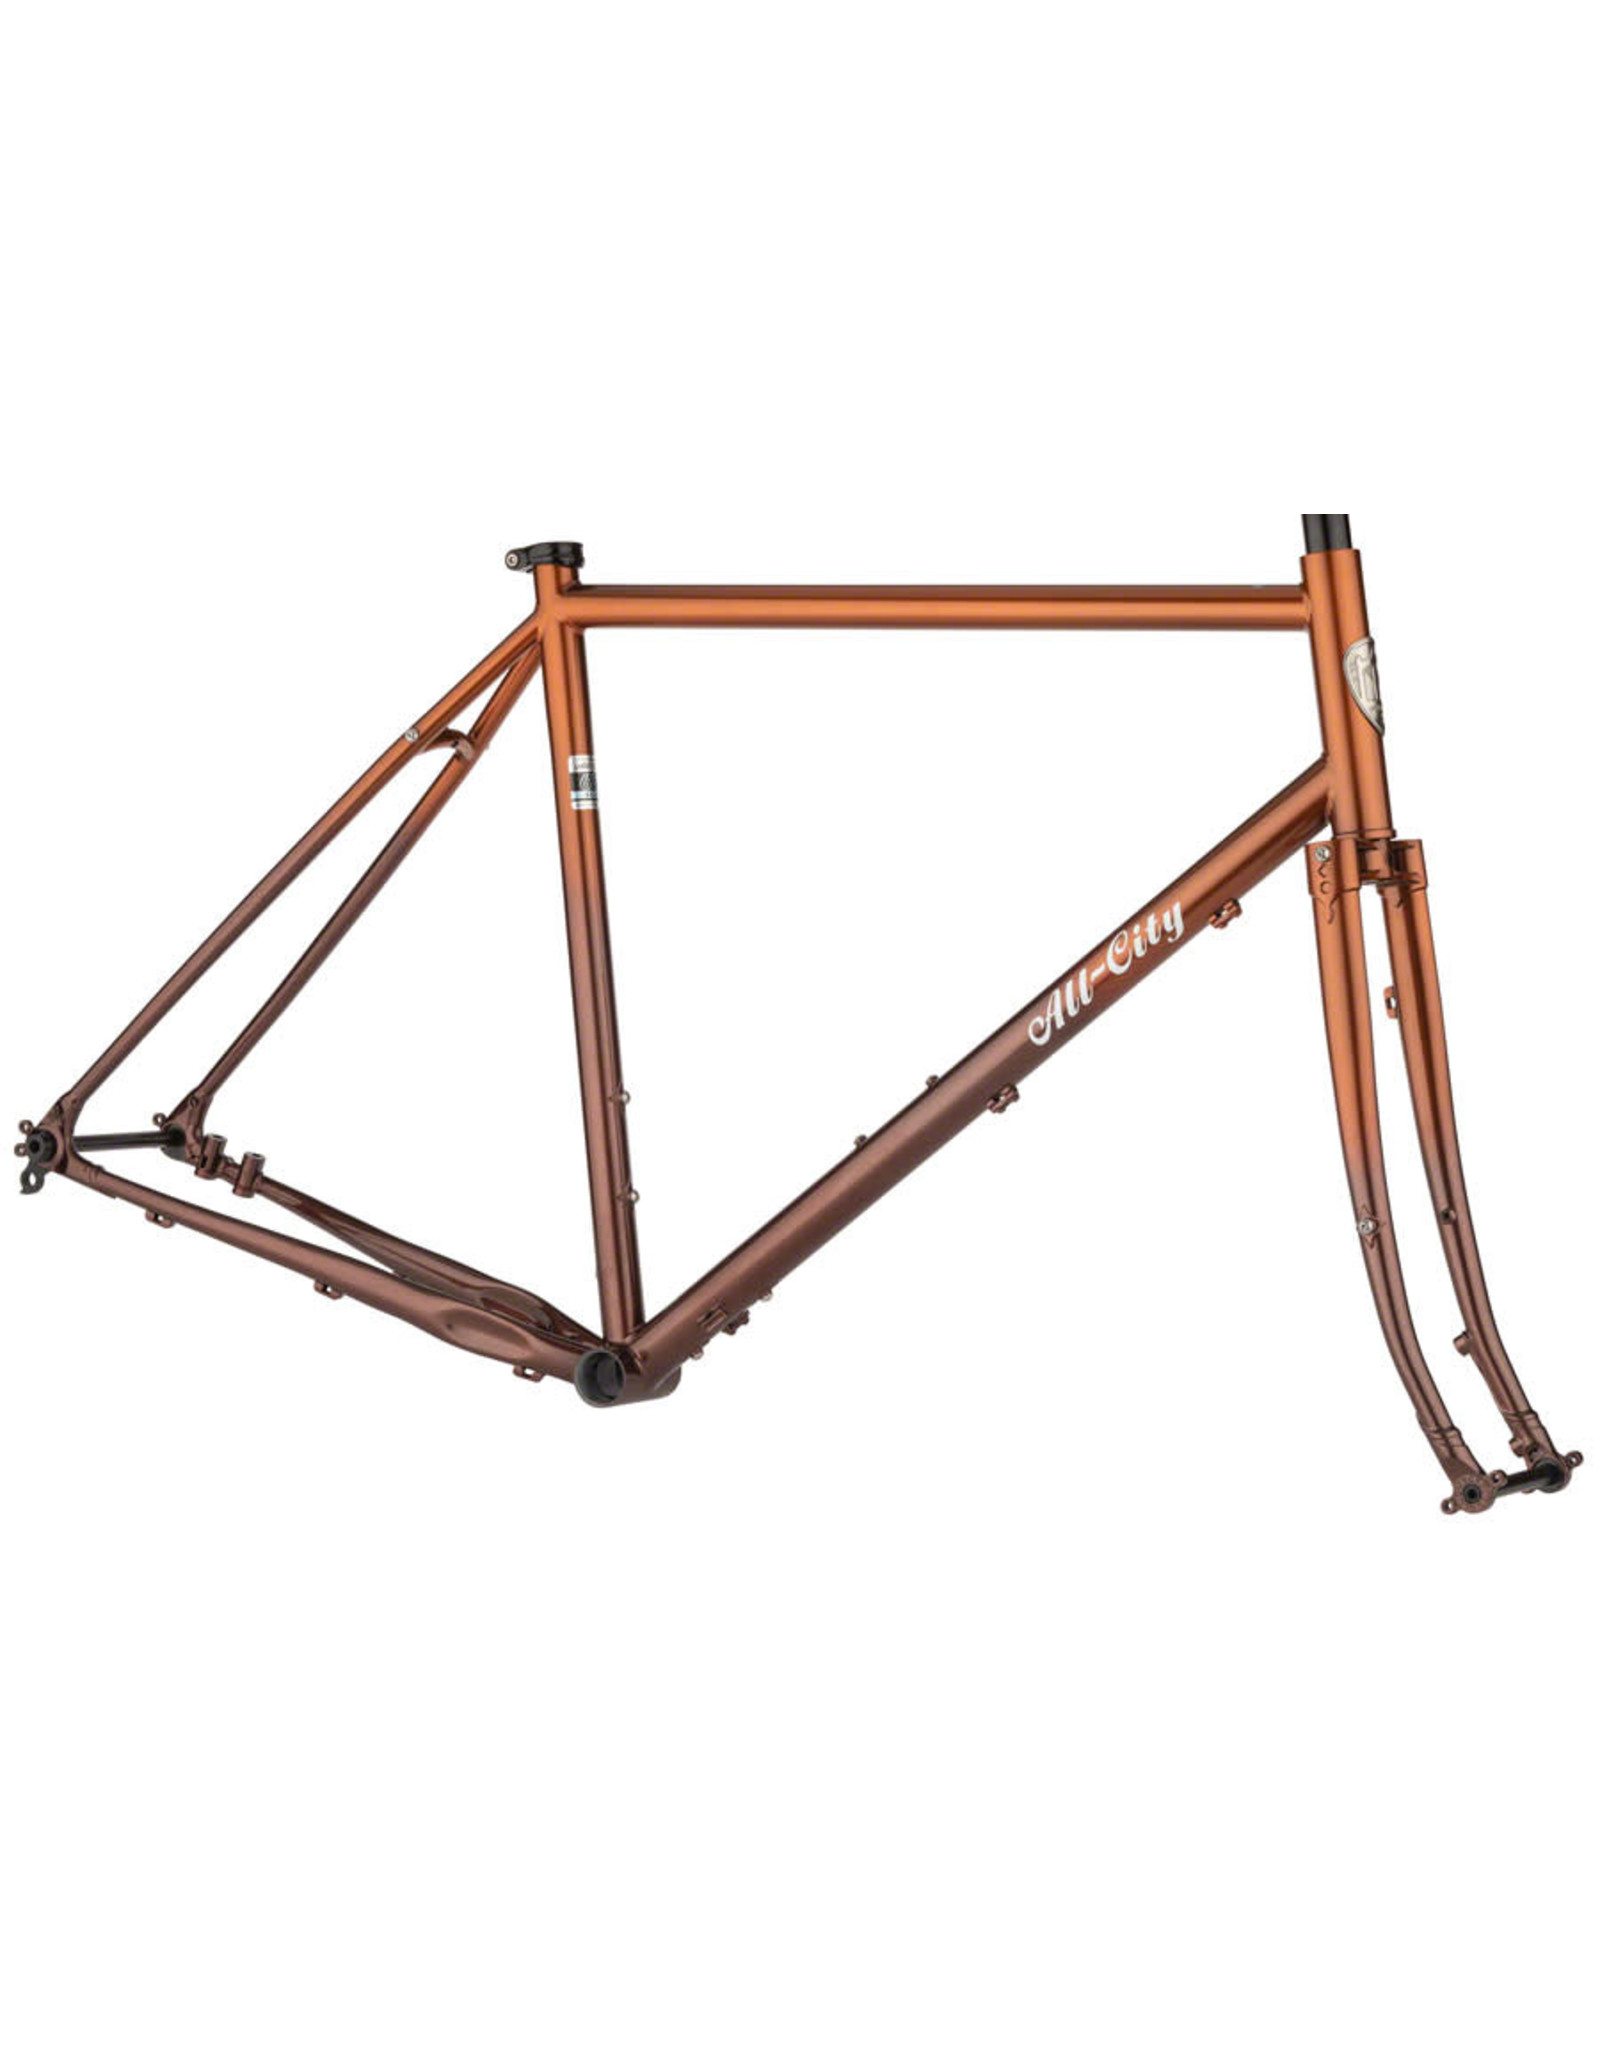 All-City All-City Gorilla Monsoon Frameset - 650b, Steel, Root Beer Keg